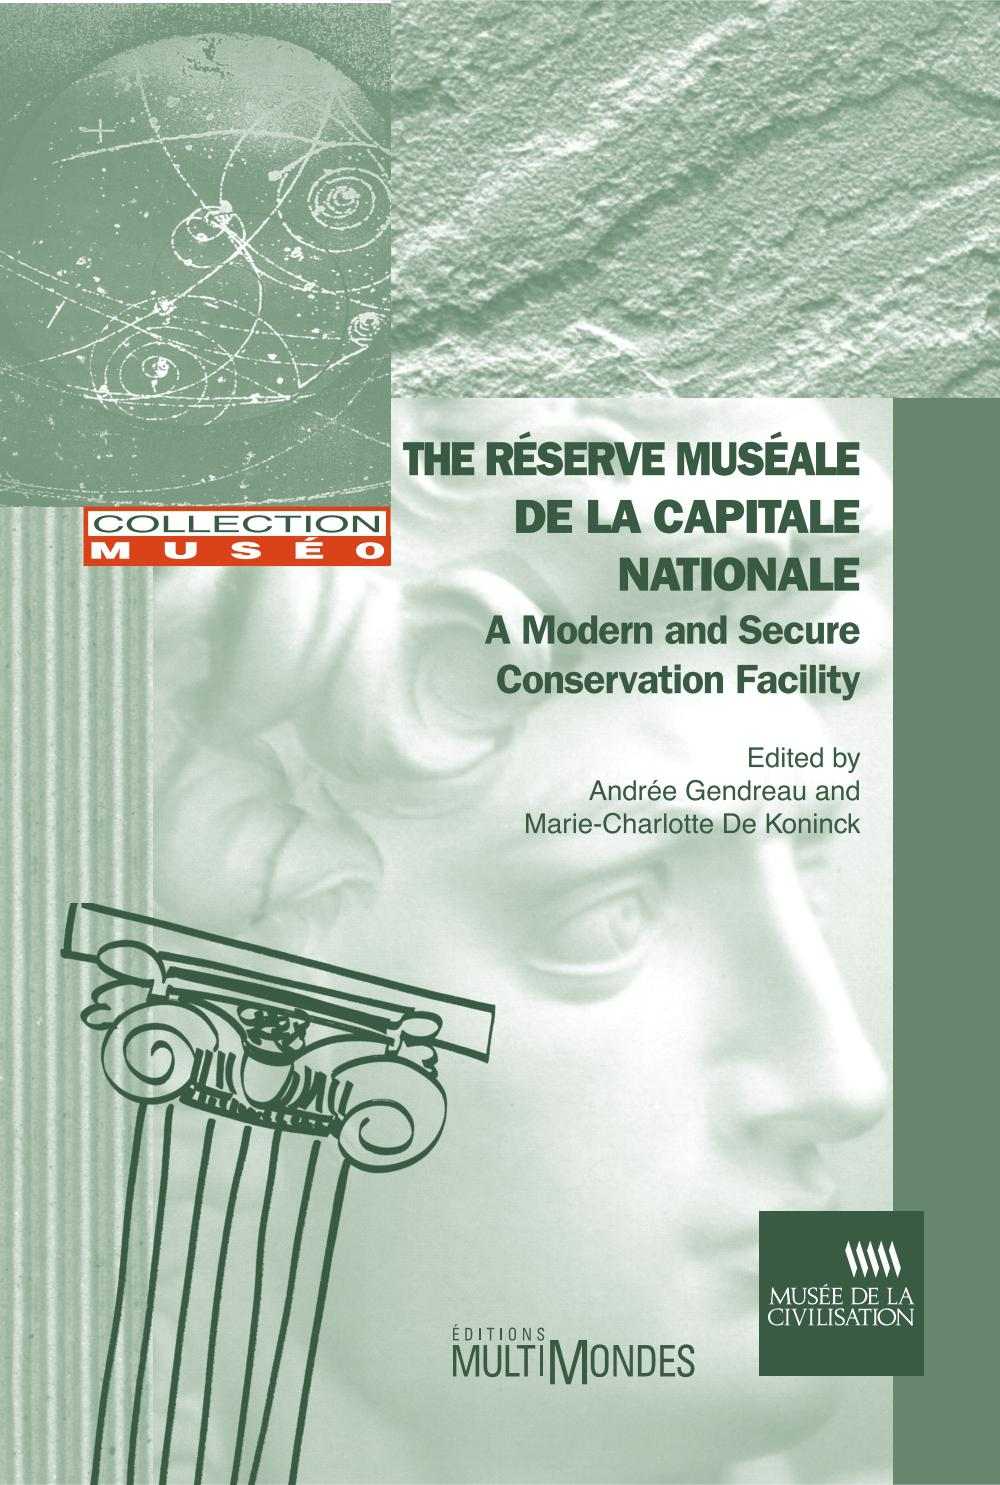 The réserve muséale de la Capitale nationale: a modern and secure conservation facility